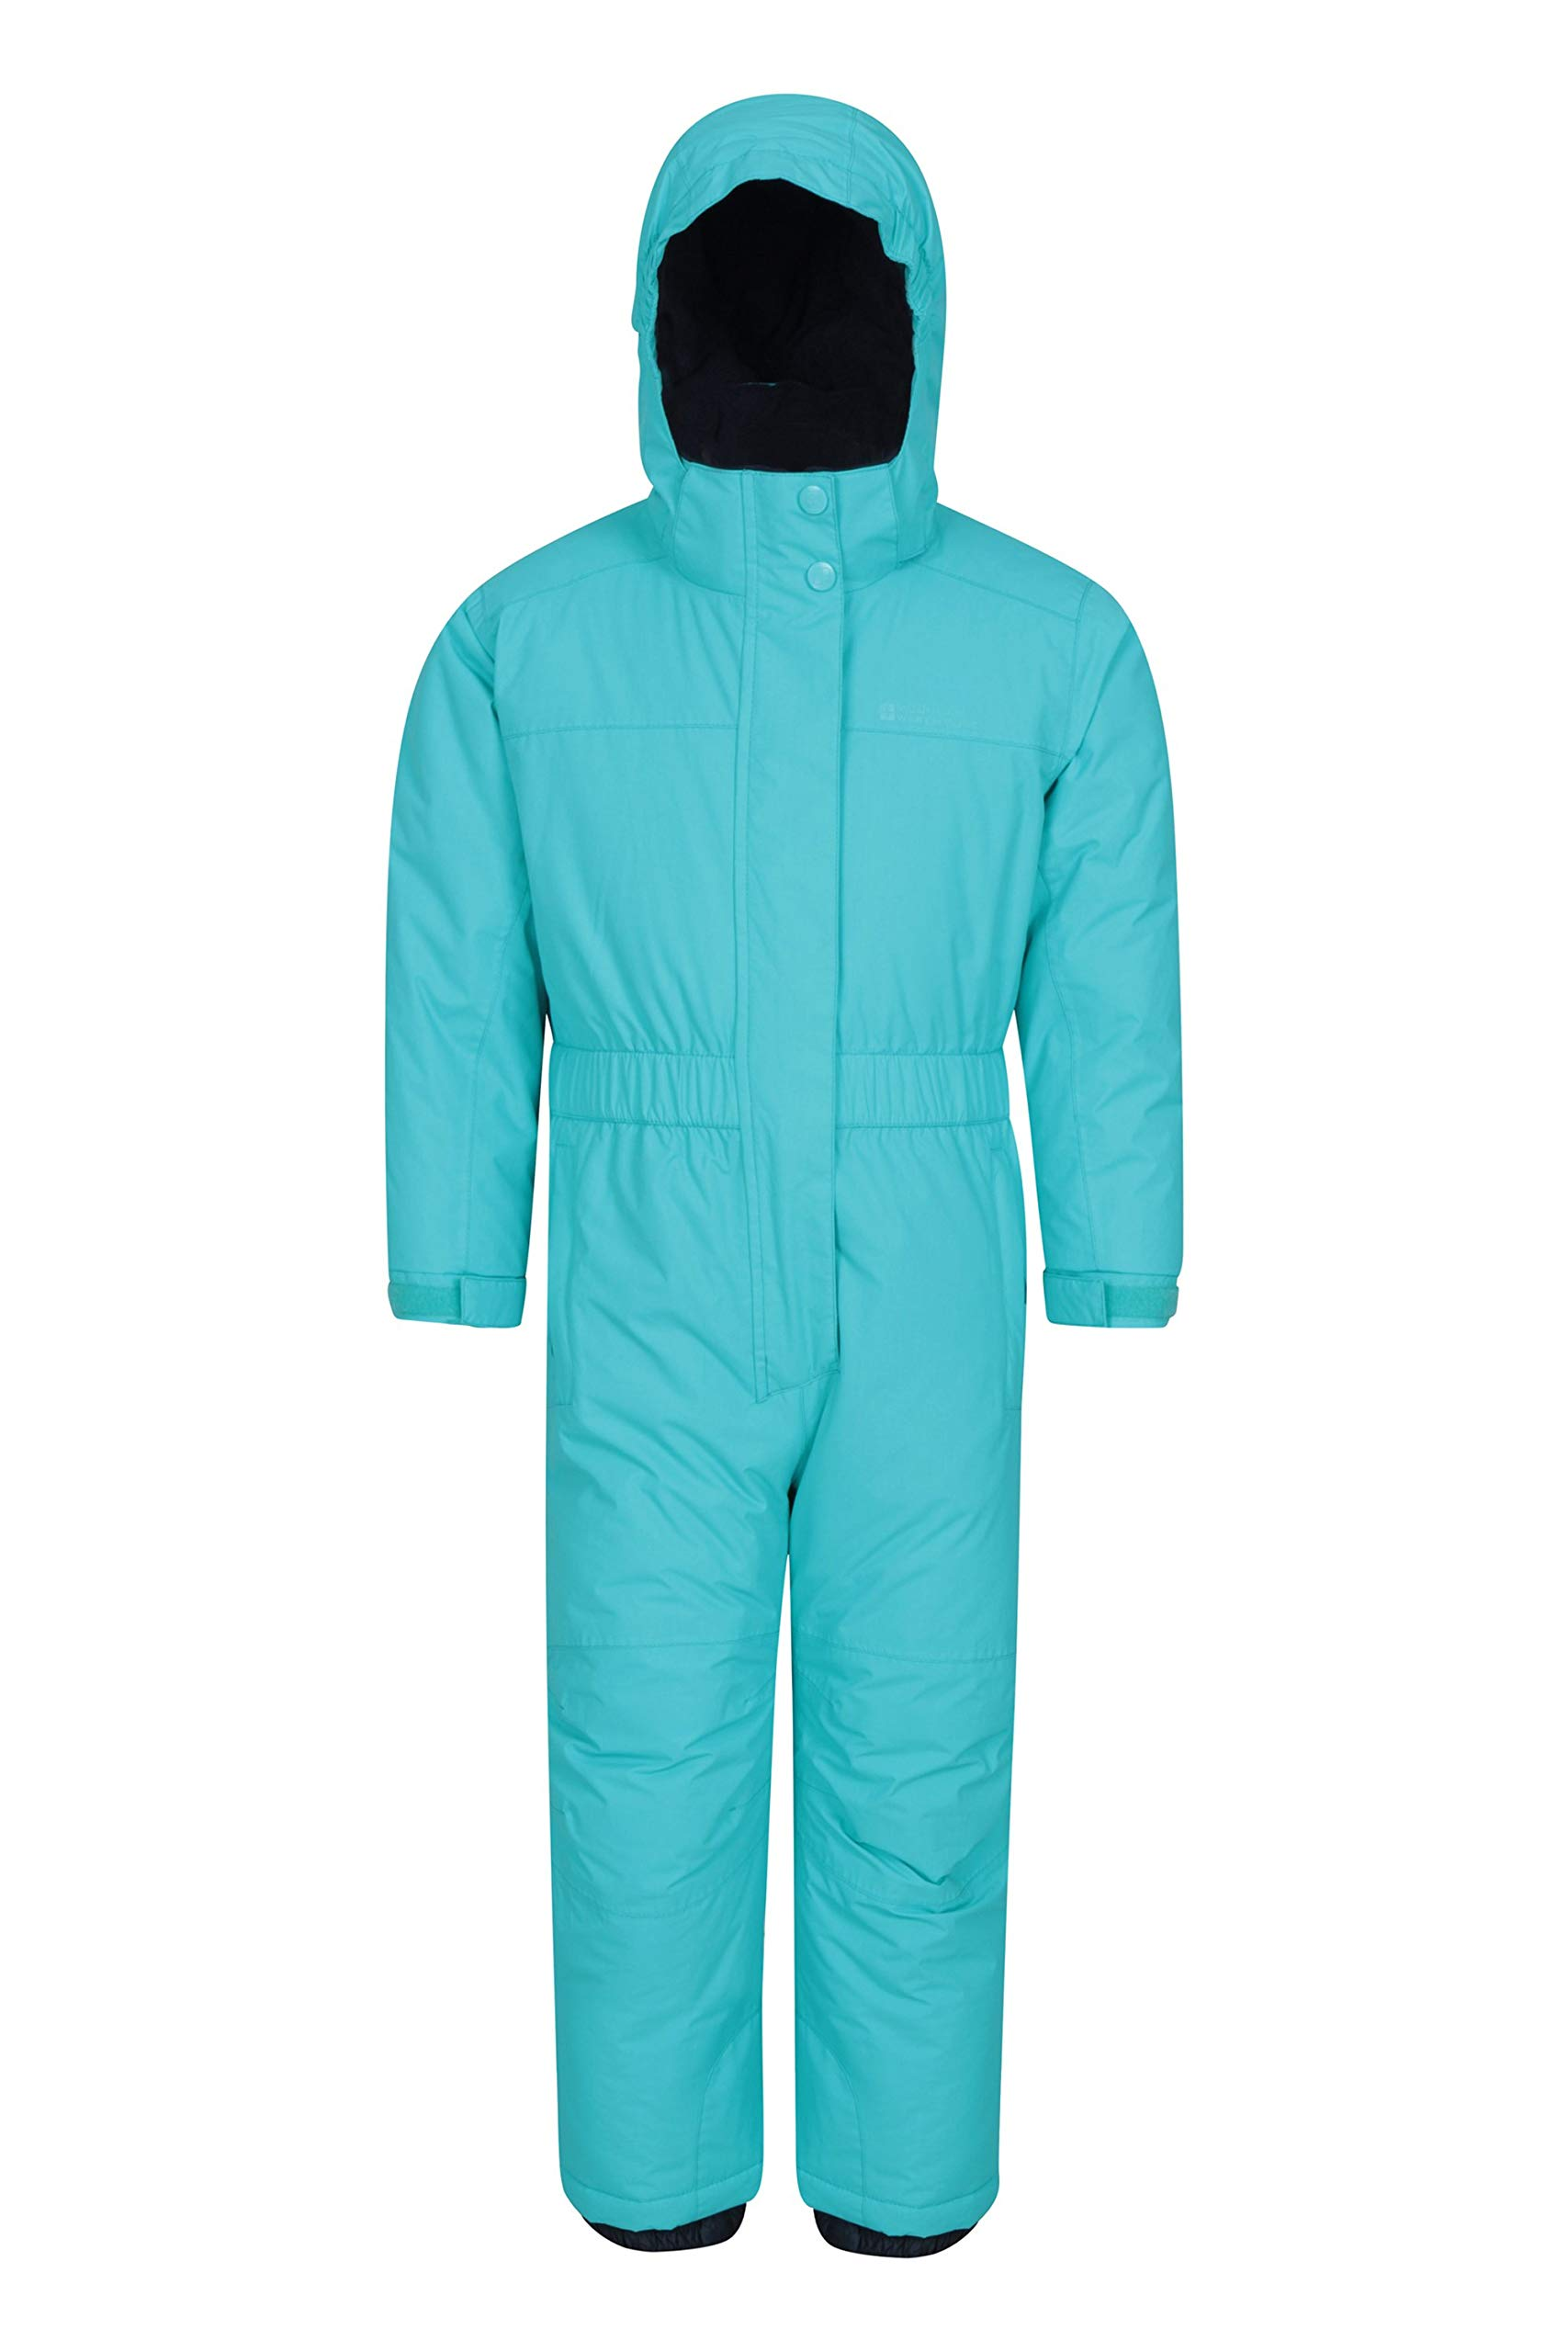 Mountain Warehouse Cloud All in 1 Kids Snowsuit - Waterproof Rainsuit Teal 5-6 Years by Mountain Warehouse